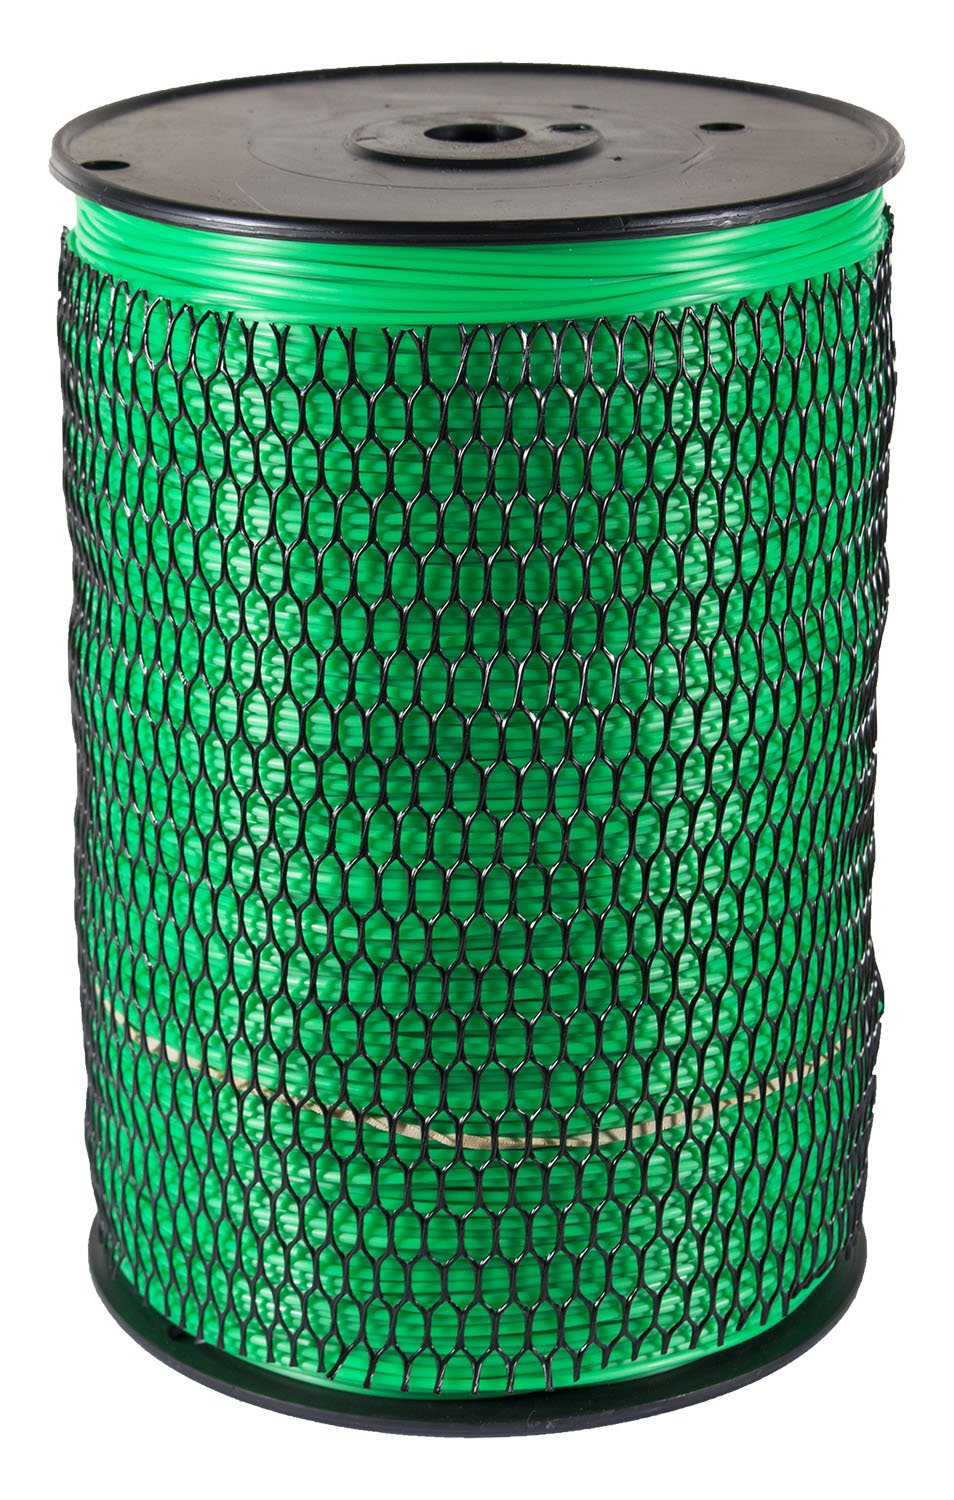 Maxpower 333880 Round .080'' Trimmer Line 2000', Approximate 5 lb Spool